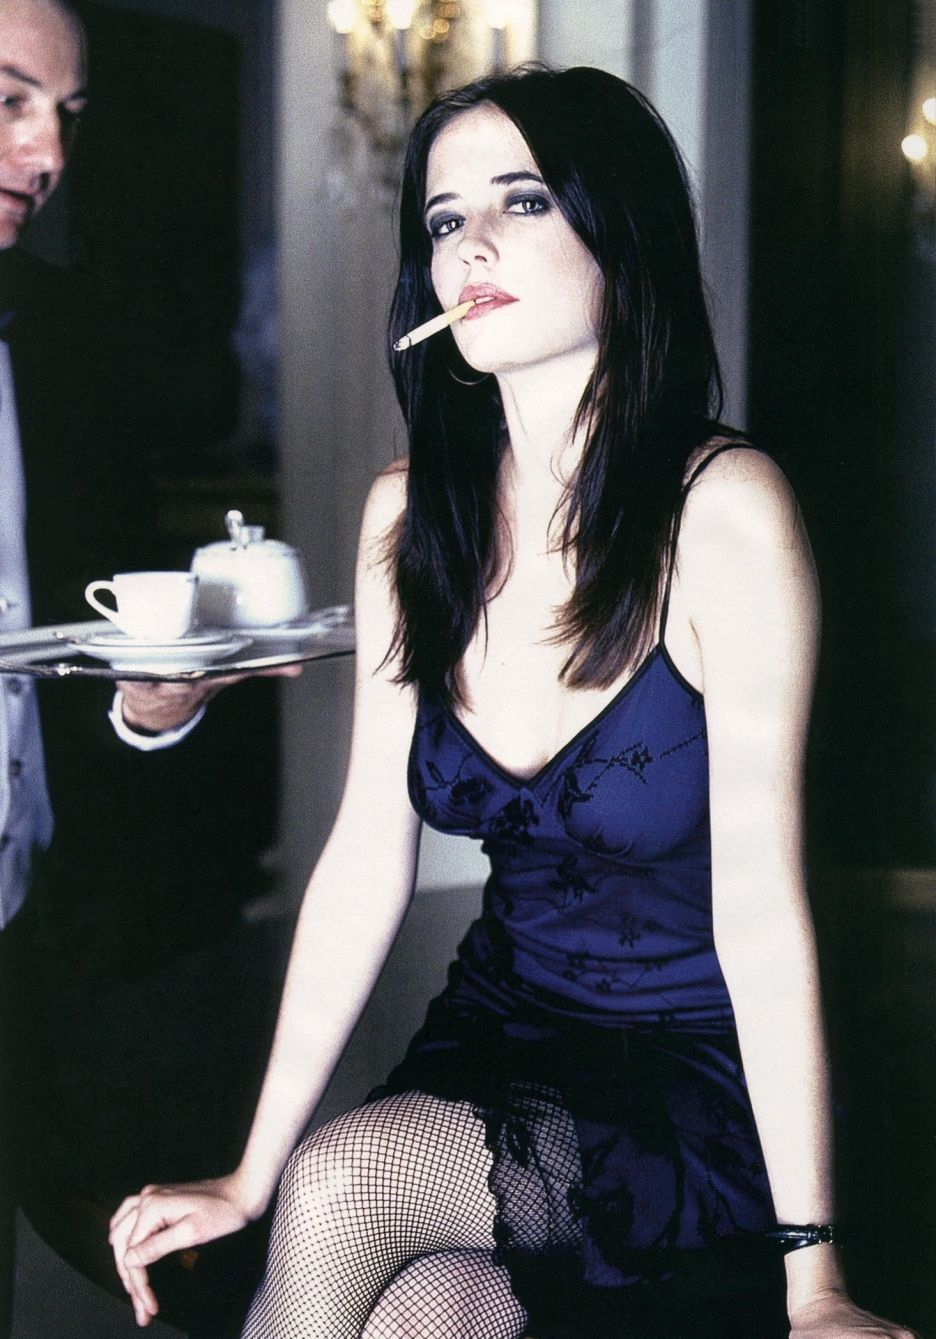 Eva Green I Not Only Want To Look Like Her I Want To Be Her